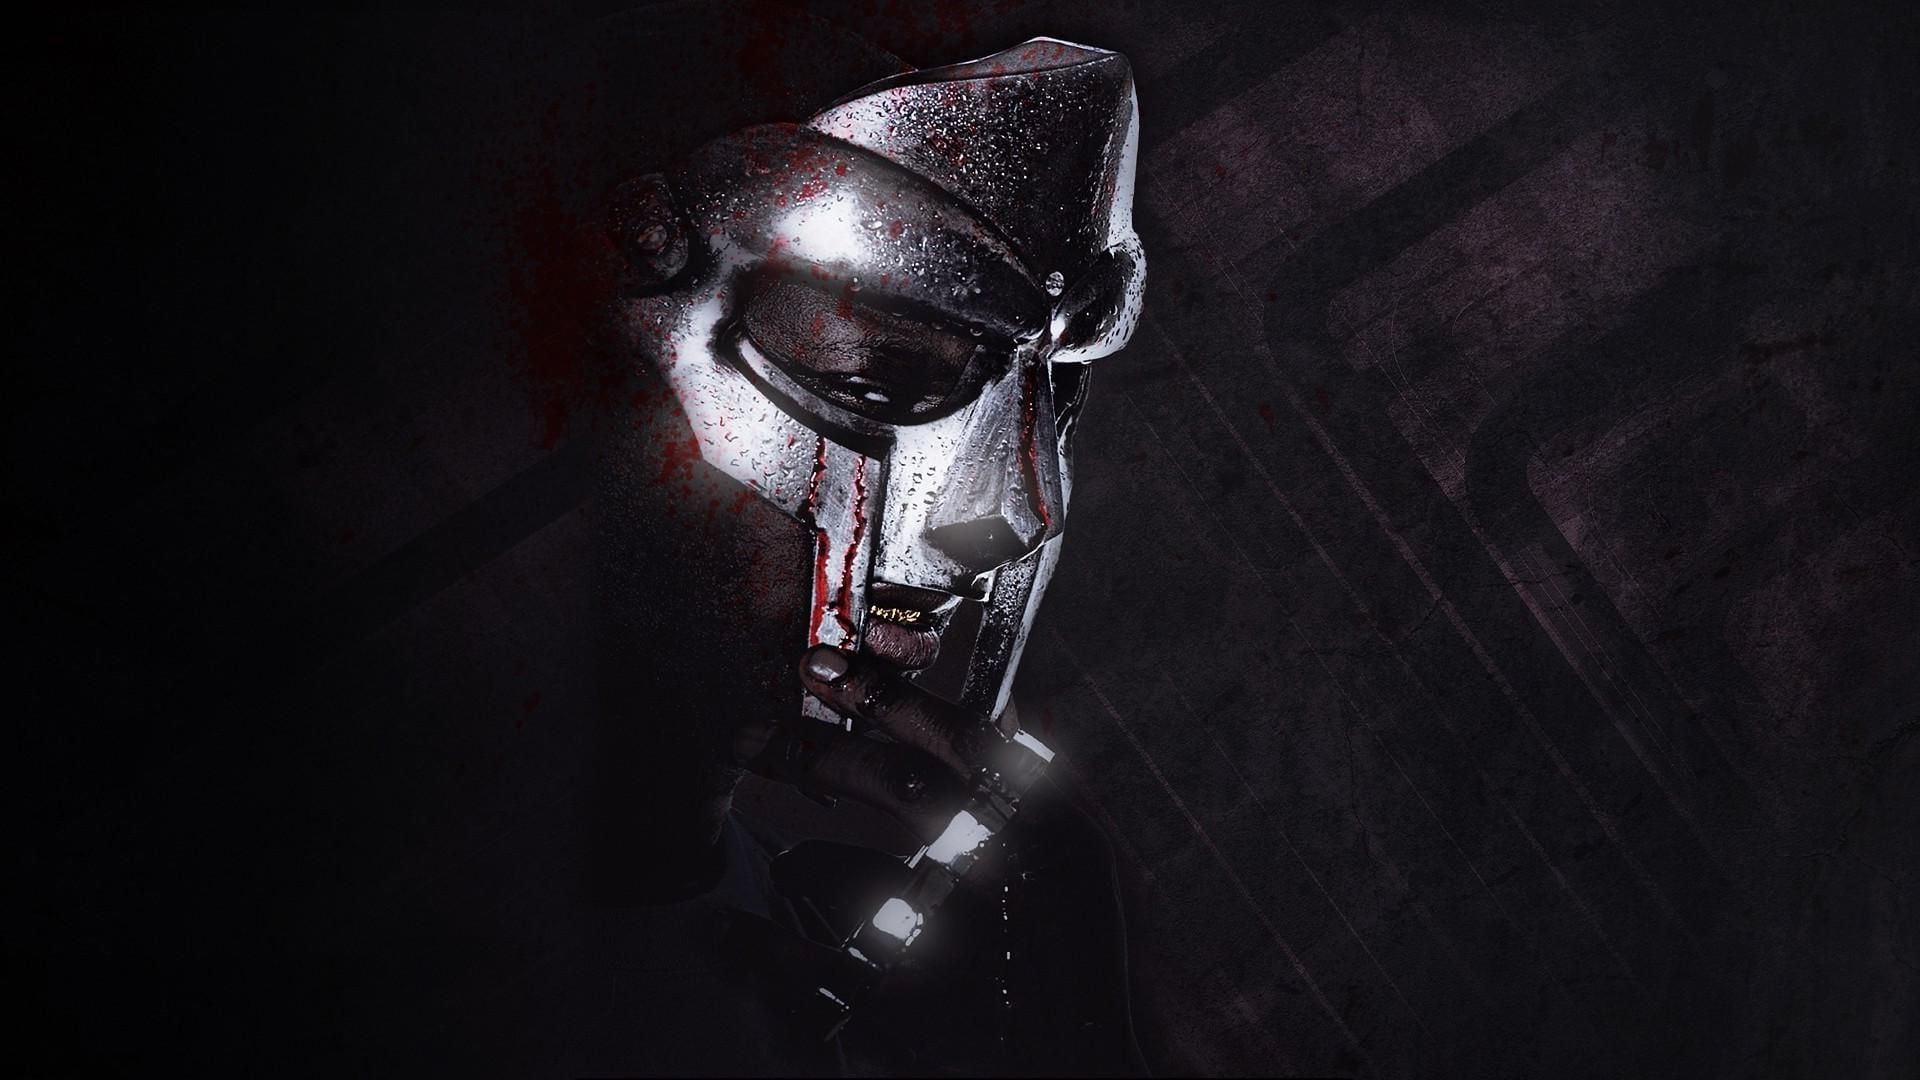 mf doom wallpaper 9 - photo #22